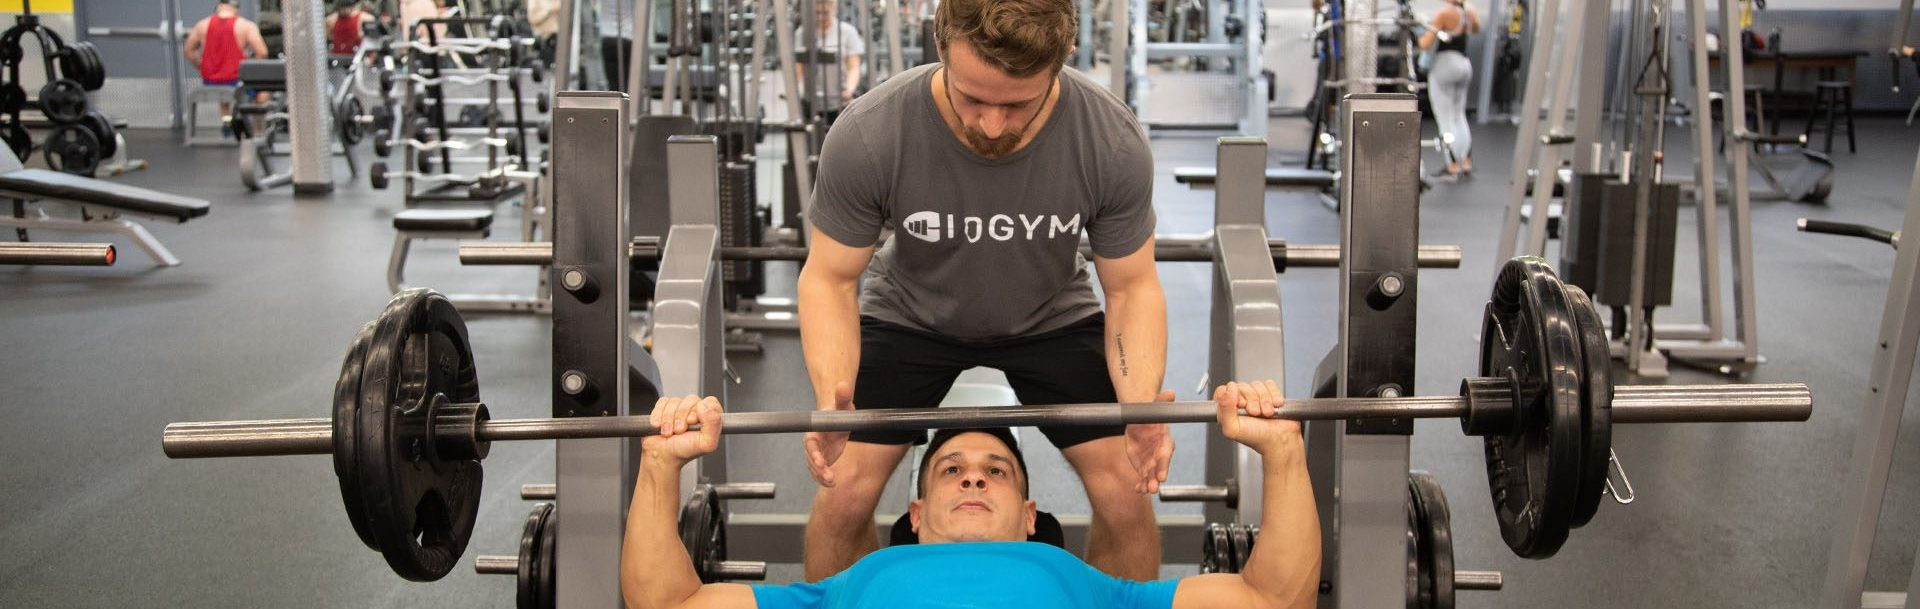 top rated personal trainer helping client lift weights